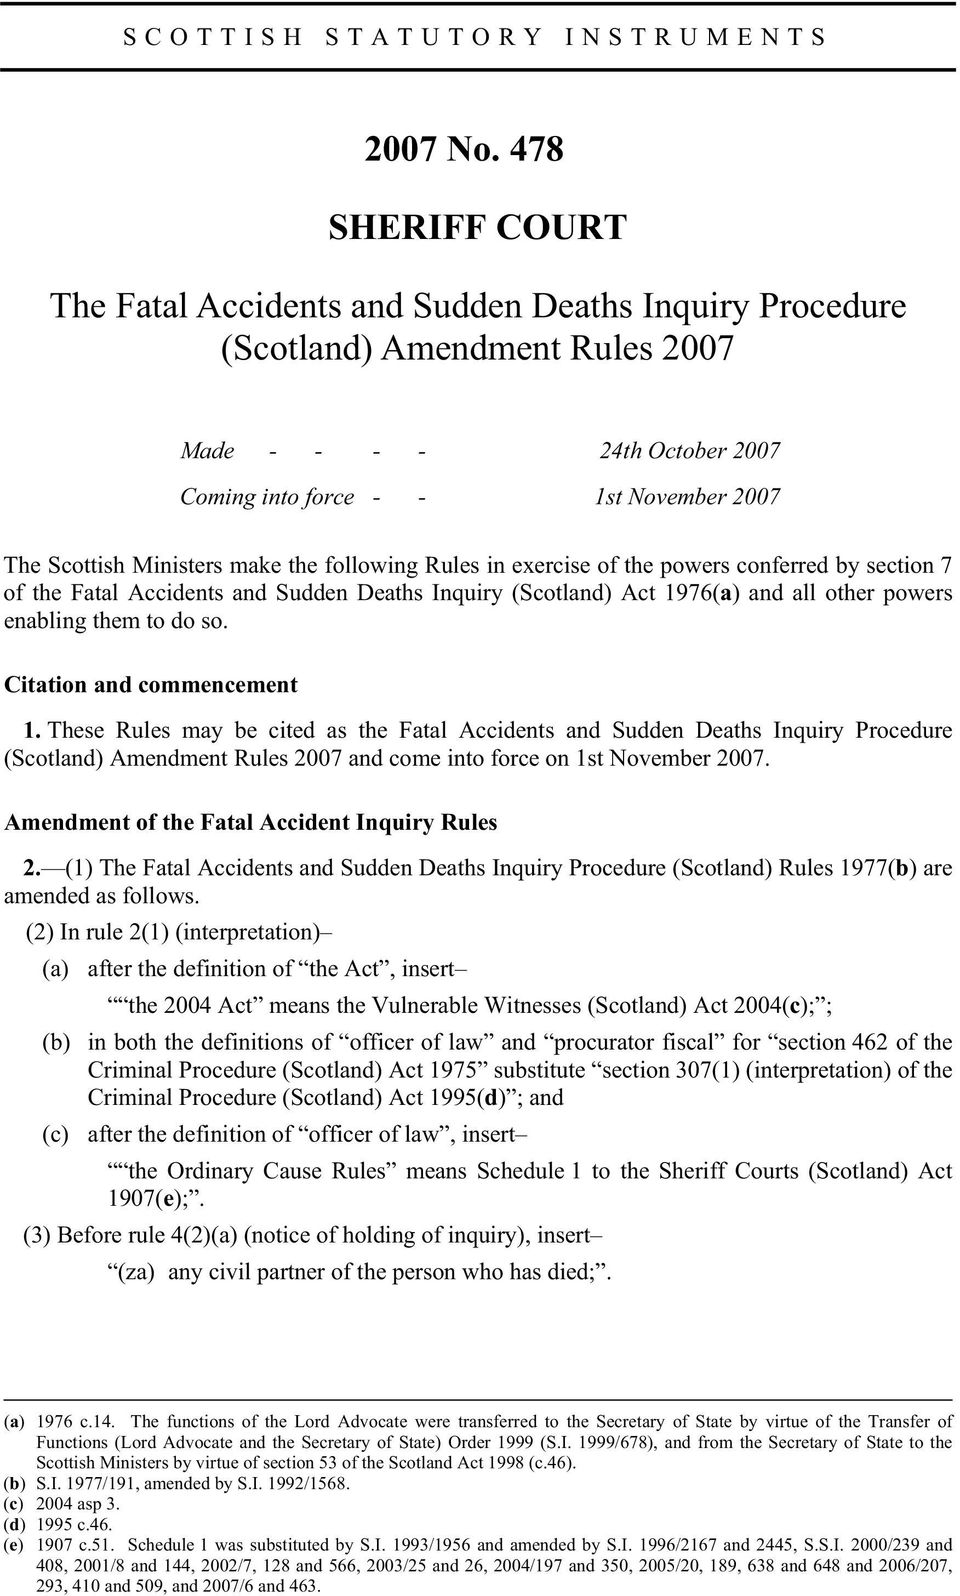 make the following Rules in exercise of the powers conferred by section 7 of the Fatal Accidents and Sudden Deaths Inquiry (Scotland) Act 1976(a) and all other powers enabling them to do so.